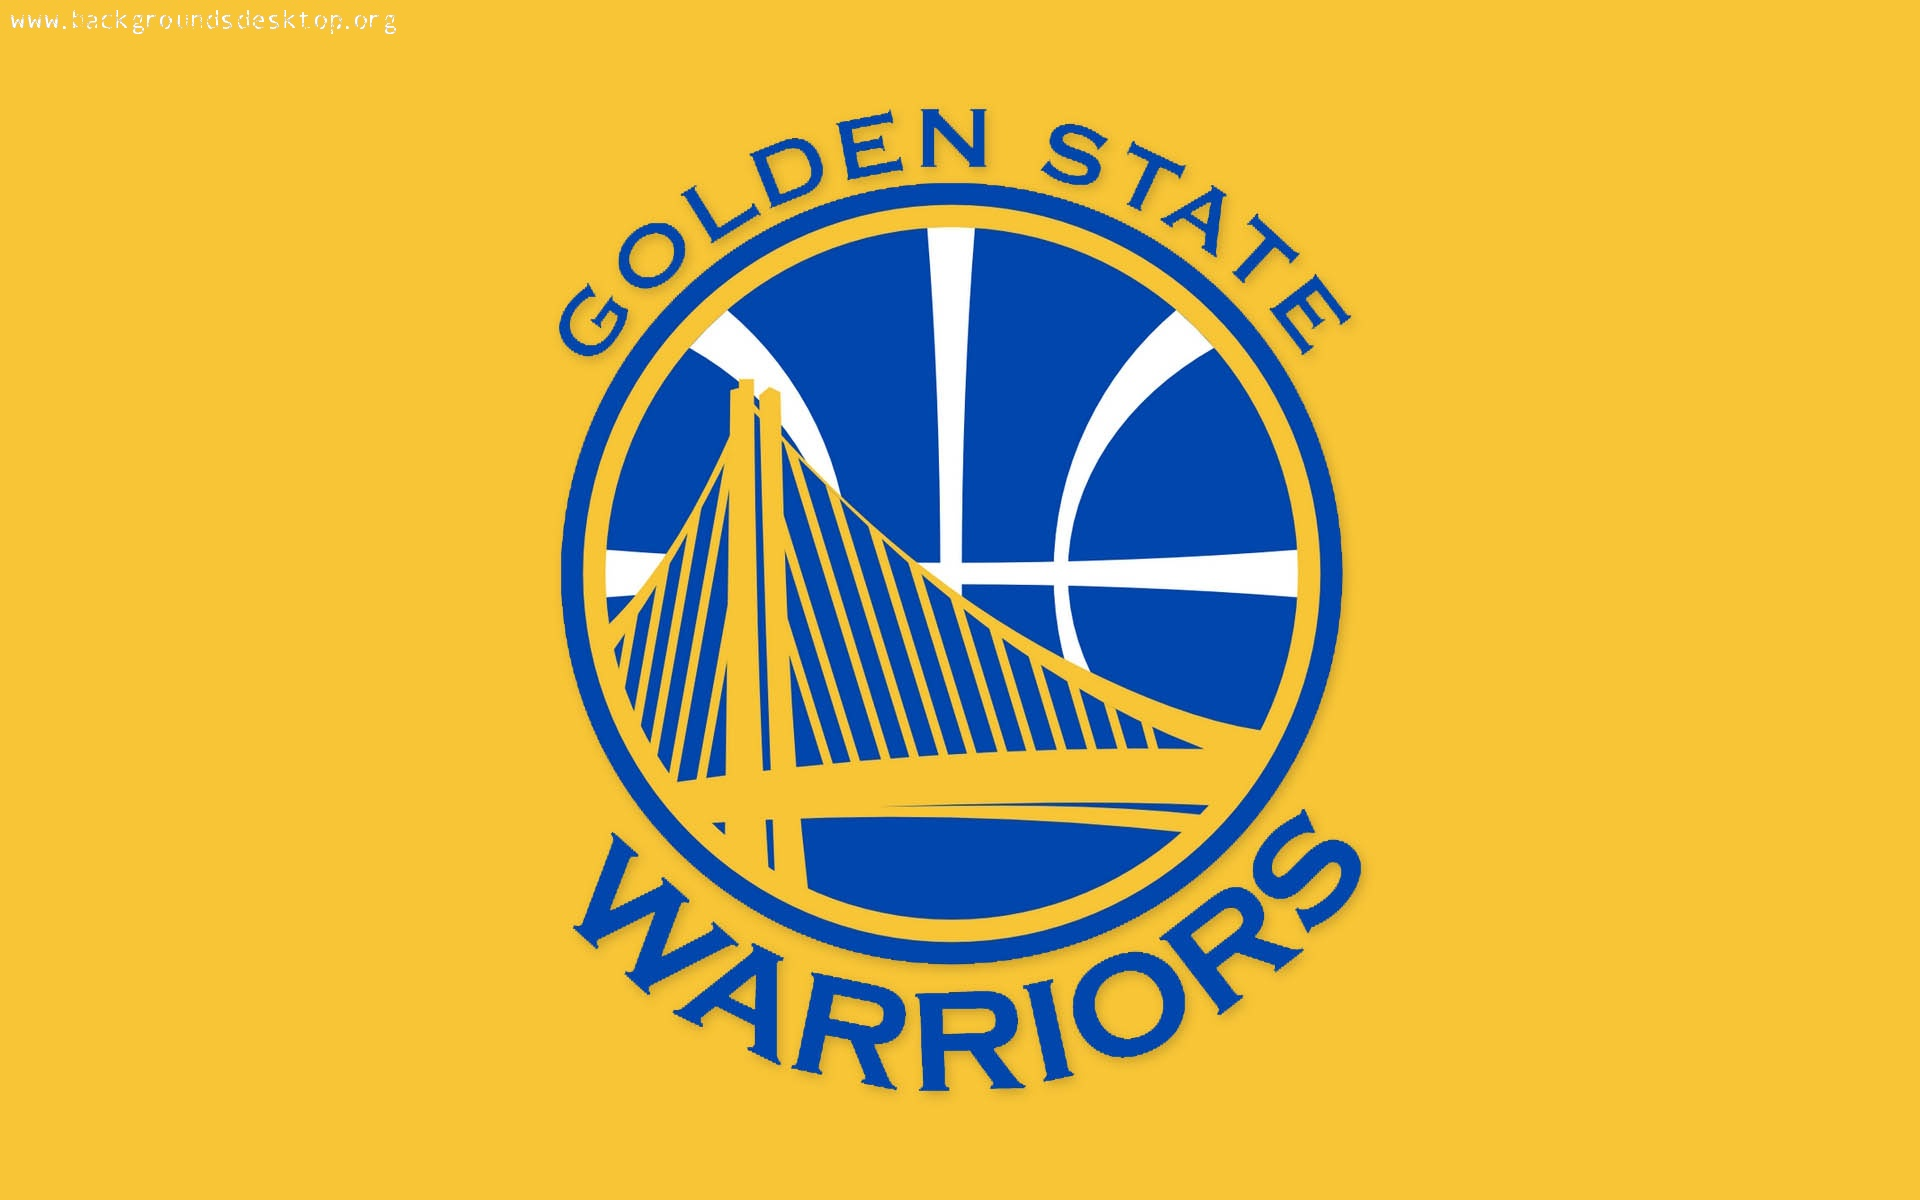 Golden State Warriors wallpapers Golden State Warriors background 1920x1200